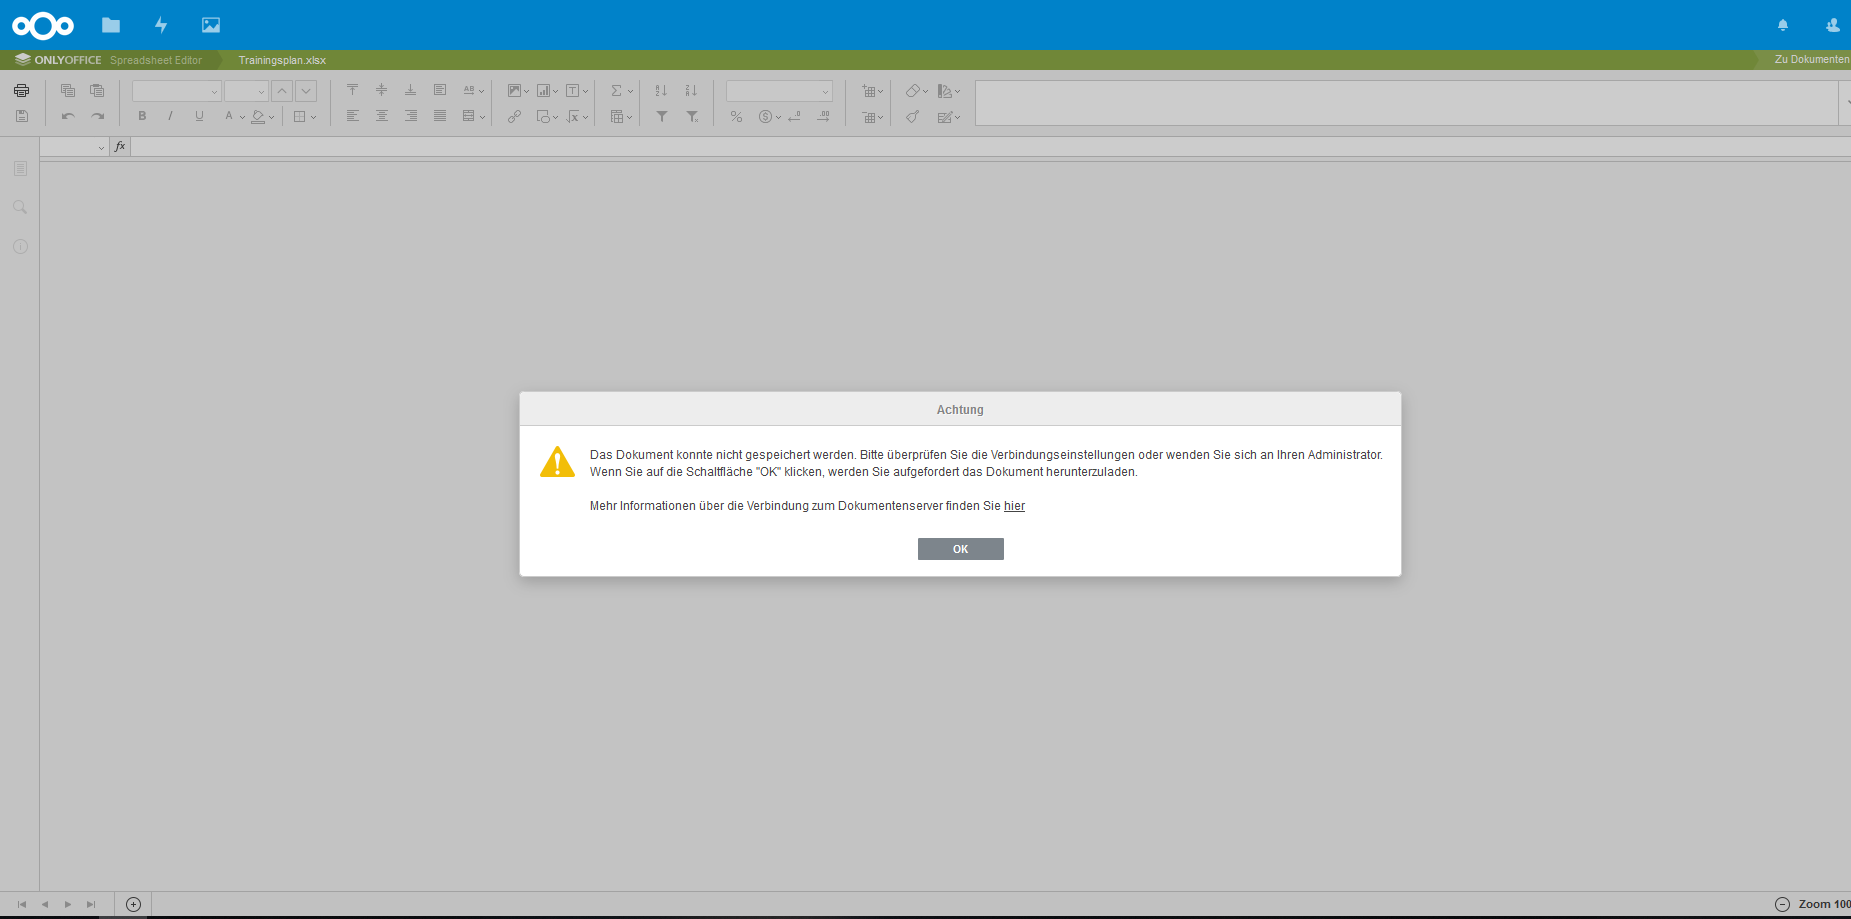 Cant Access Nextcloud Files The Files Could Not Be Saved